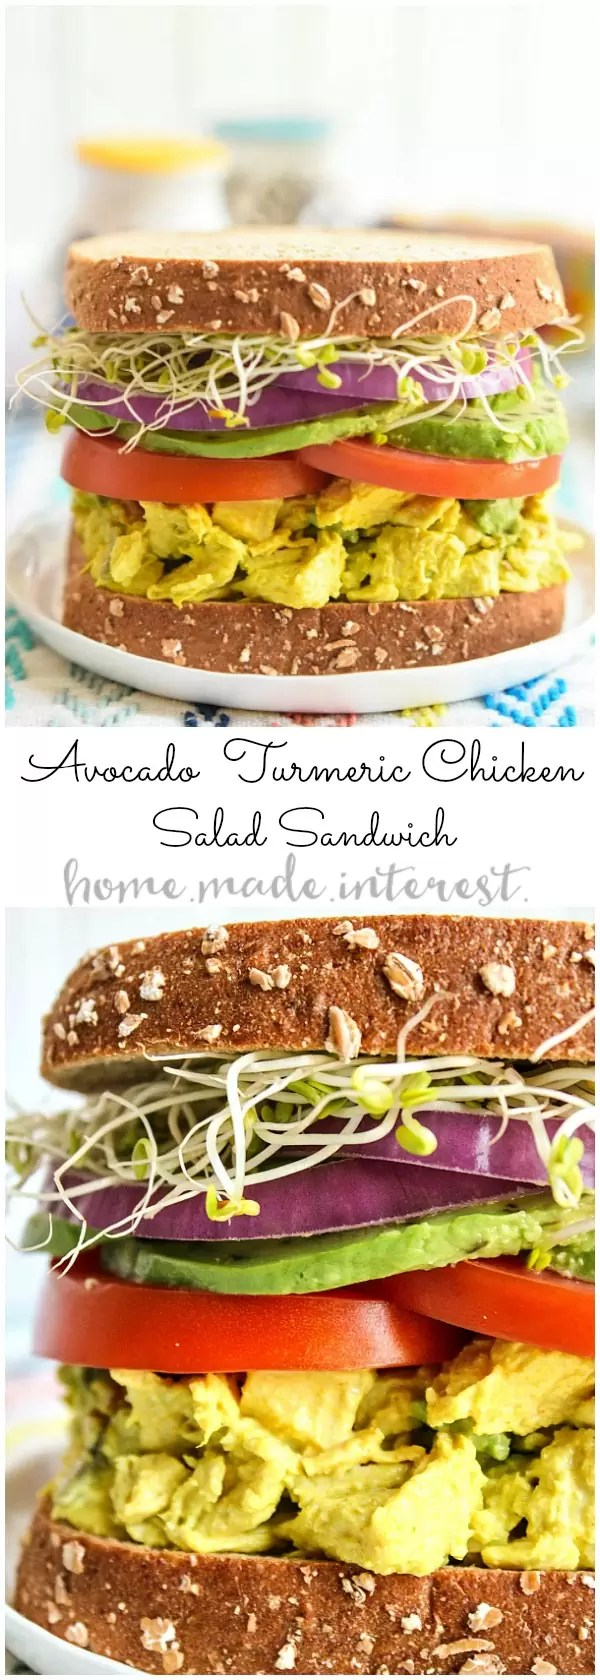 This wholesome sandwich is a healthy lunch recipe that is filled with flavor. The turmeric chicken salad base is mashed with avocados to make a creamy lunch salad that is healthy and full good fats. The avocado turmeric chicken salad is sandwiched between two pieces of sprouted bread for a filling lunch recipe!